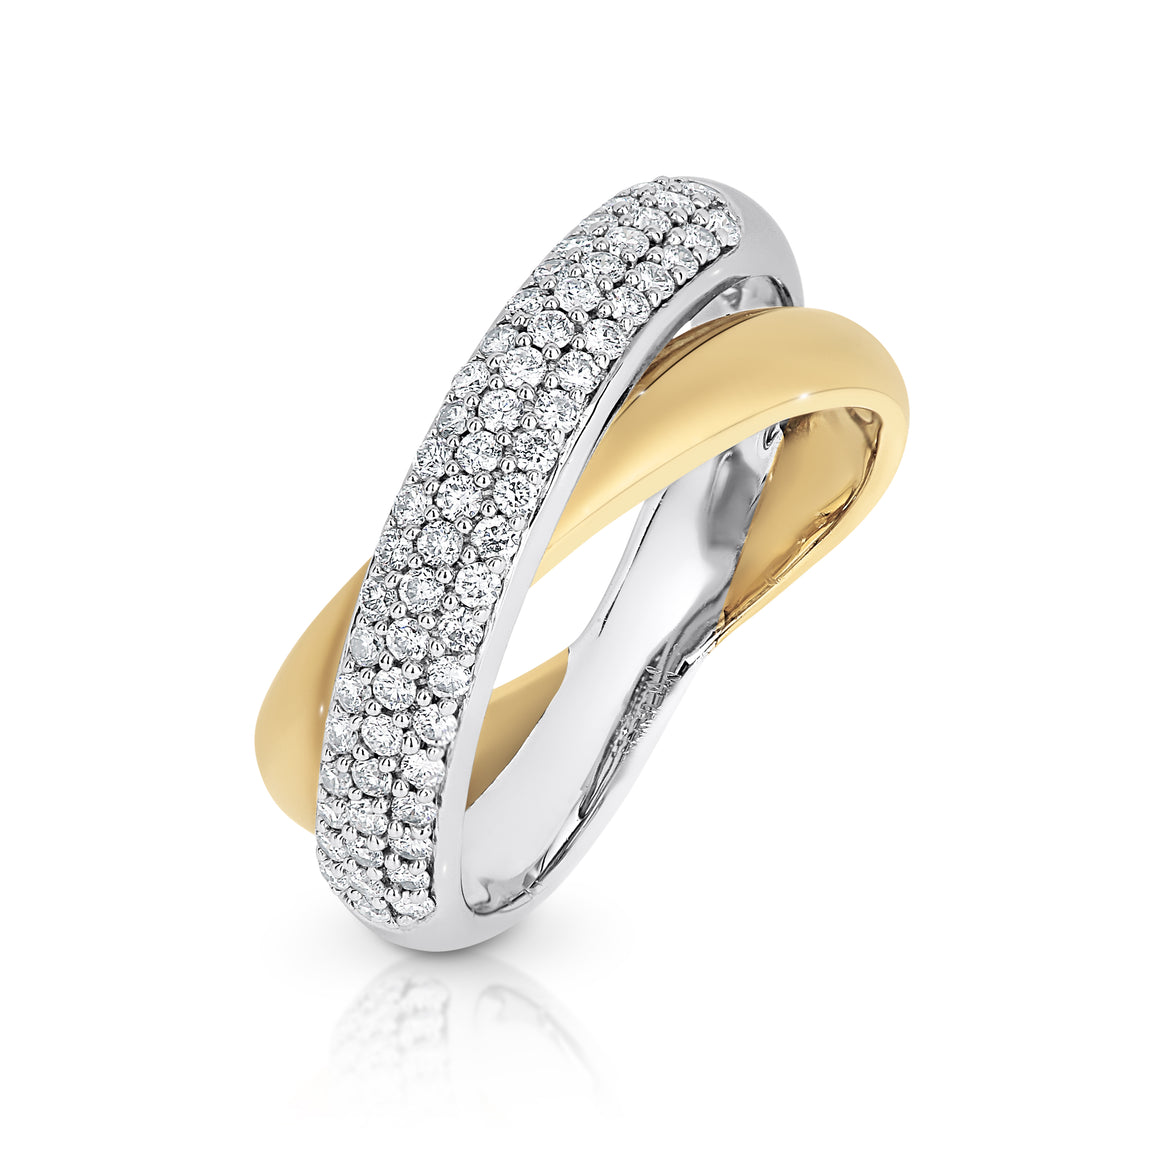 White & Yellow Gold Diamond 'Lanus' Ring - Gemma Stone Jewellery